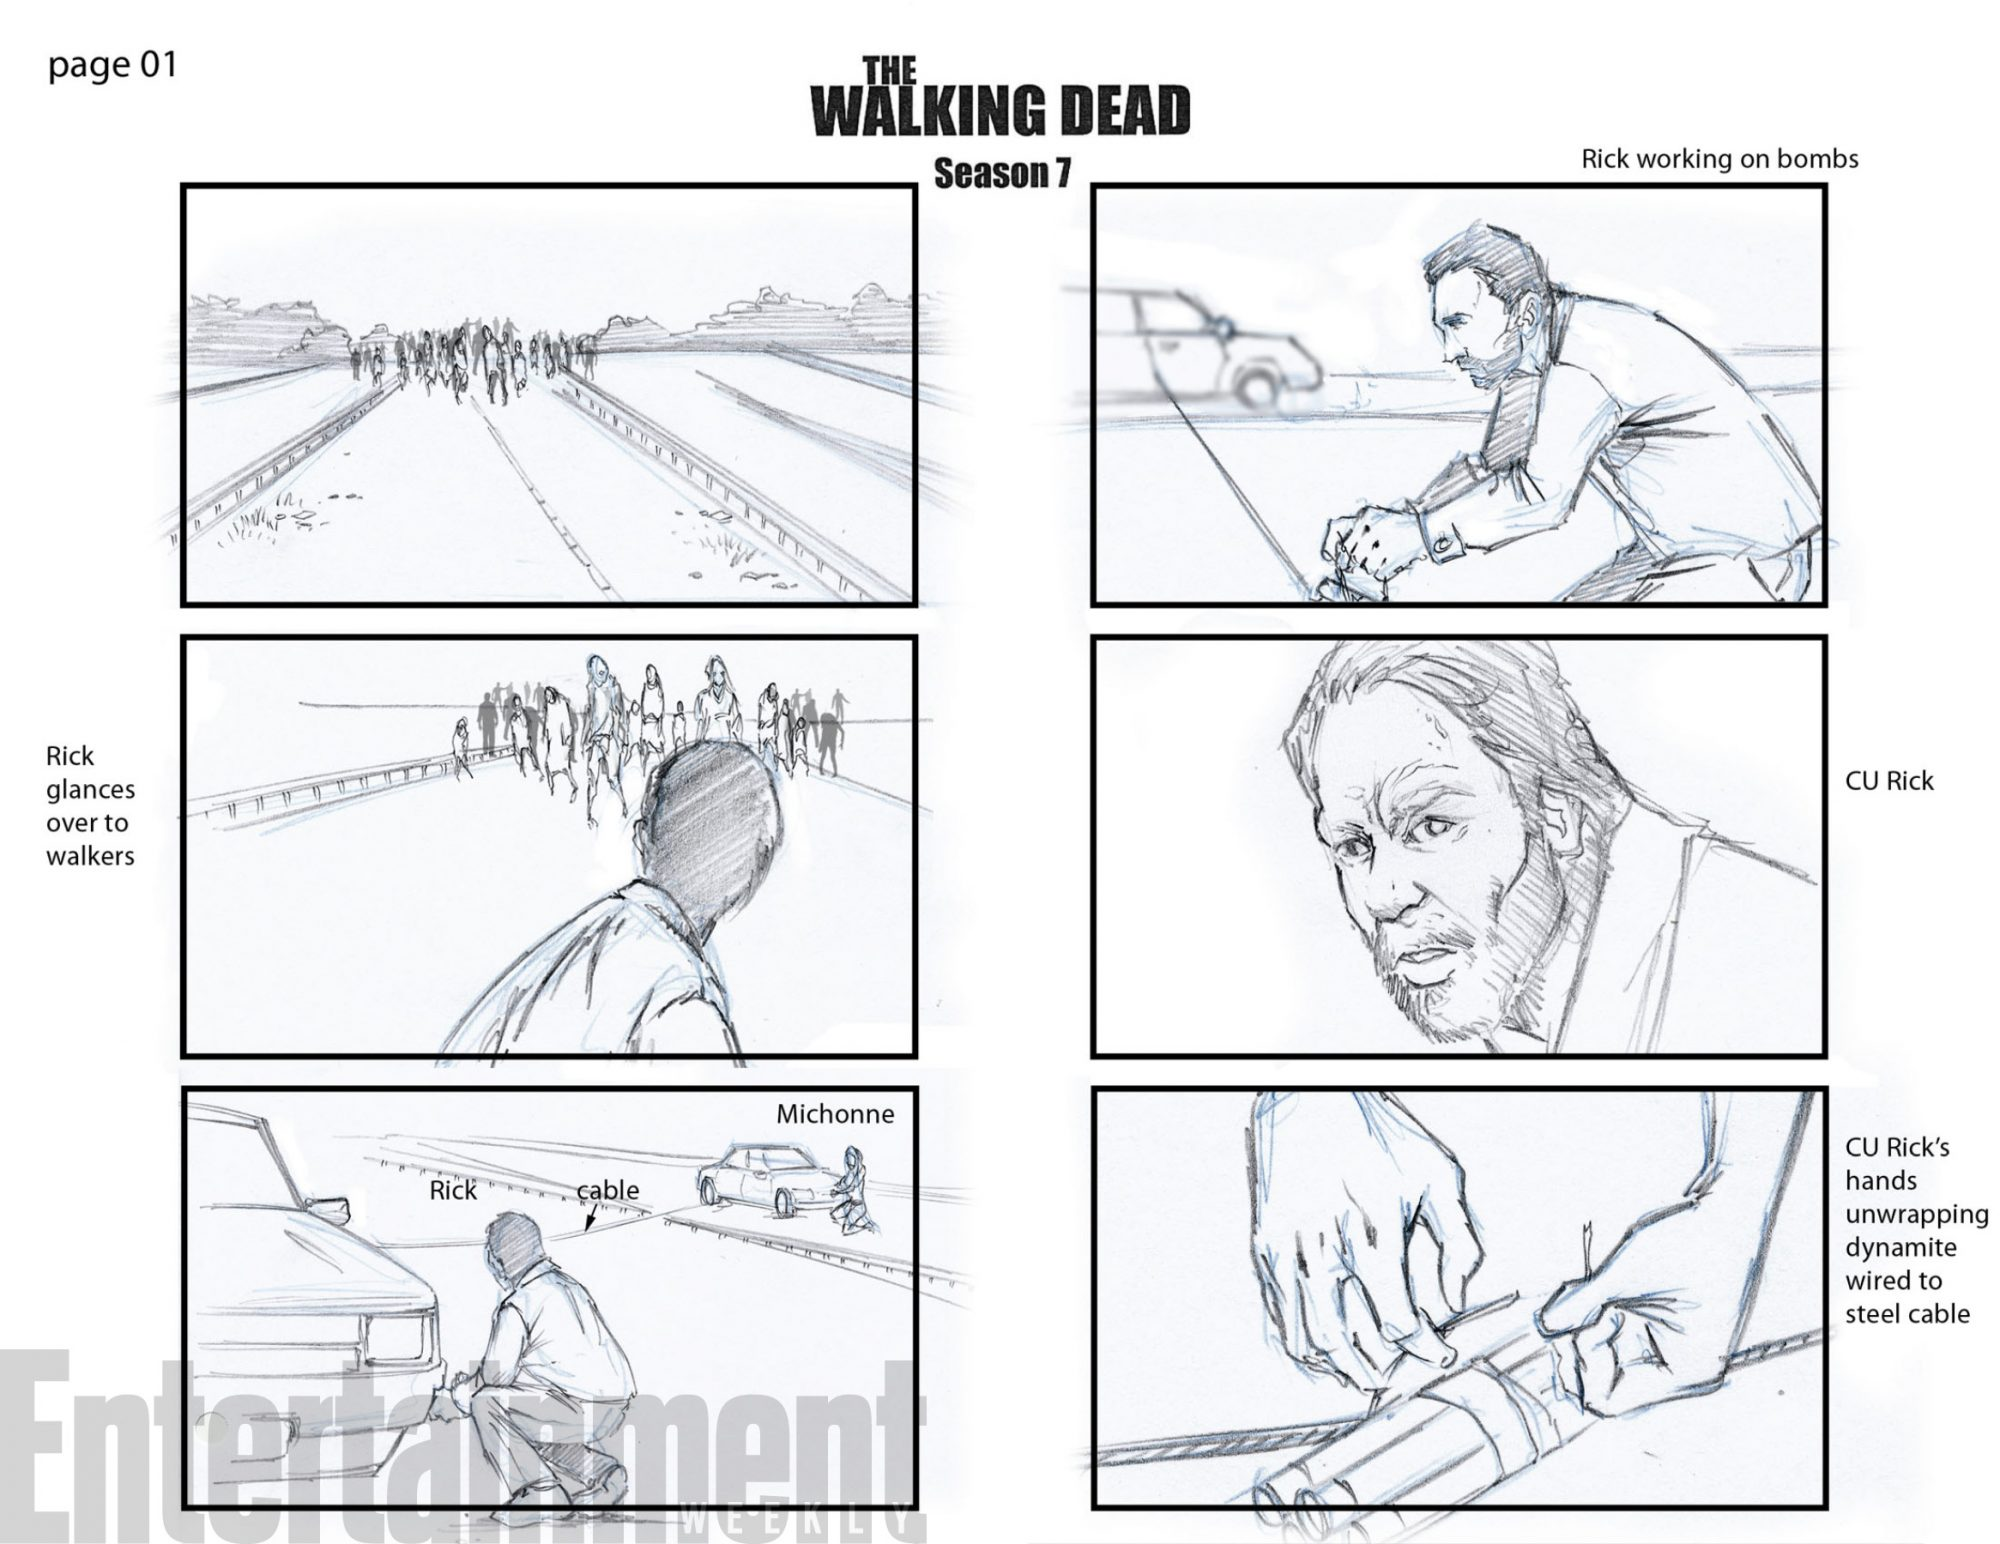 The Walking dead, storybording with Google Earth and Street View - Page 7 Image10